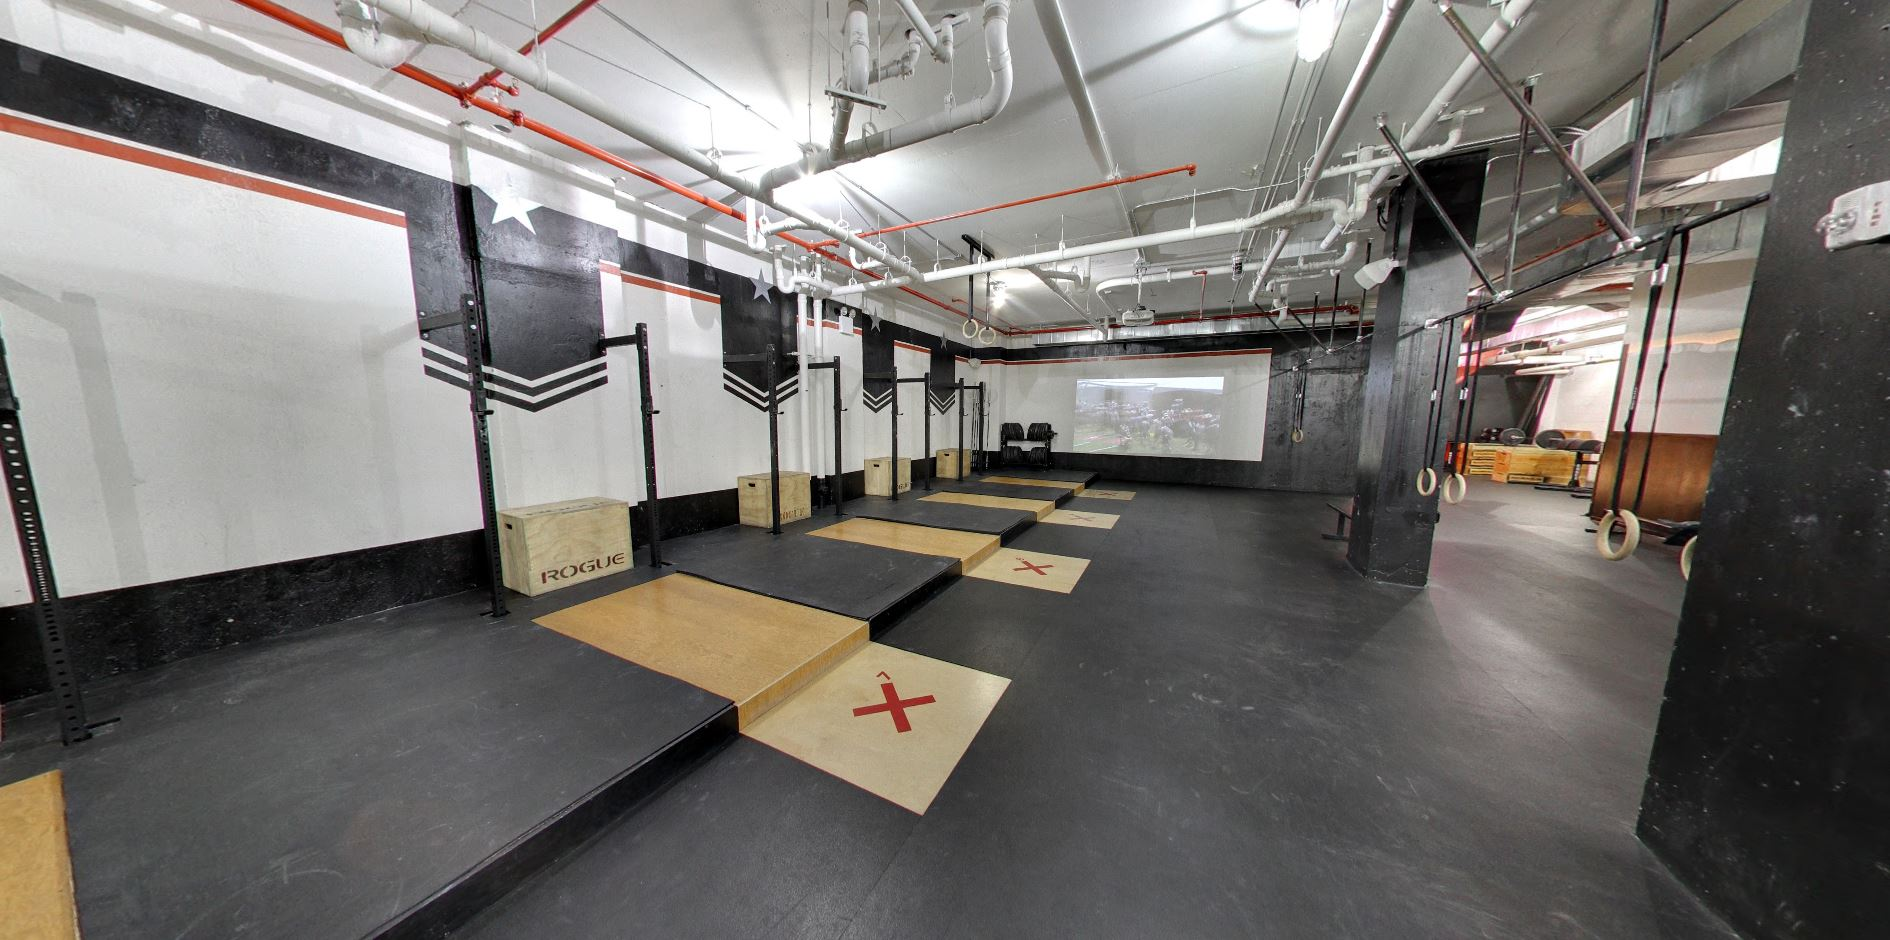 Different stations and an image projected on the wall in the fitness studio of the Crossfit Tribeca location in New York with MEP designed by 2L Engineering.